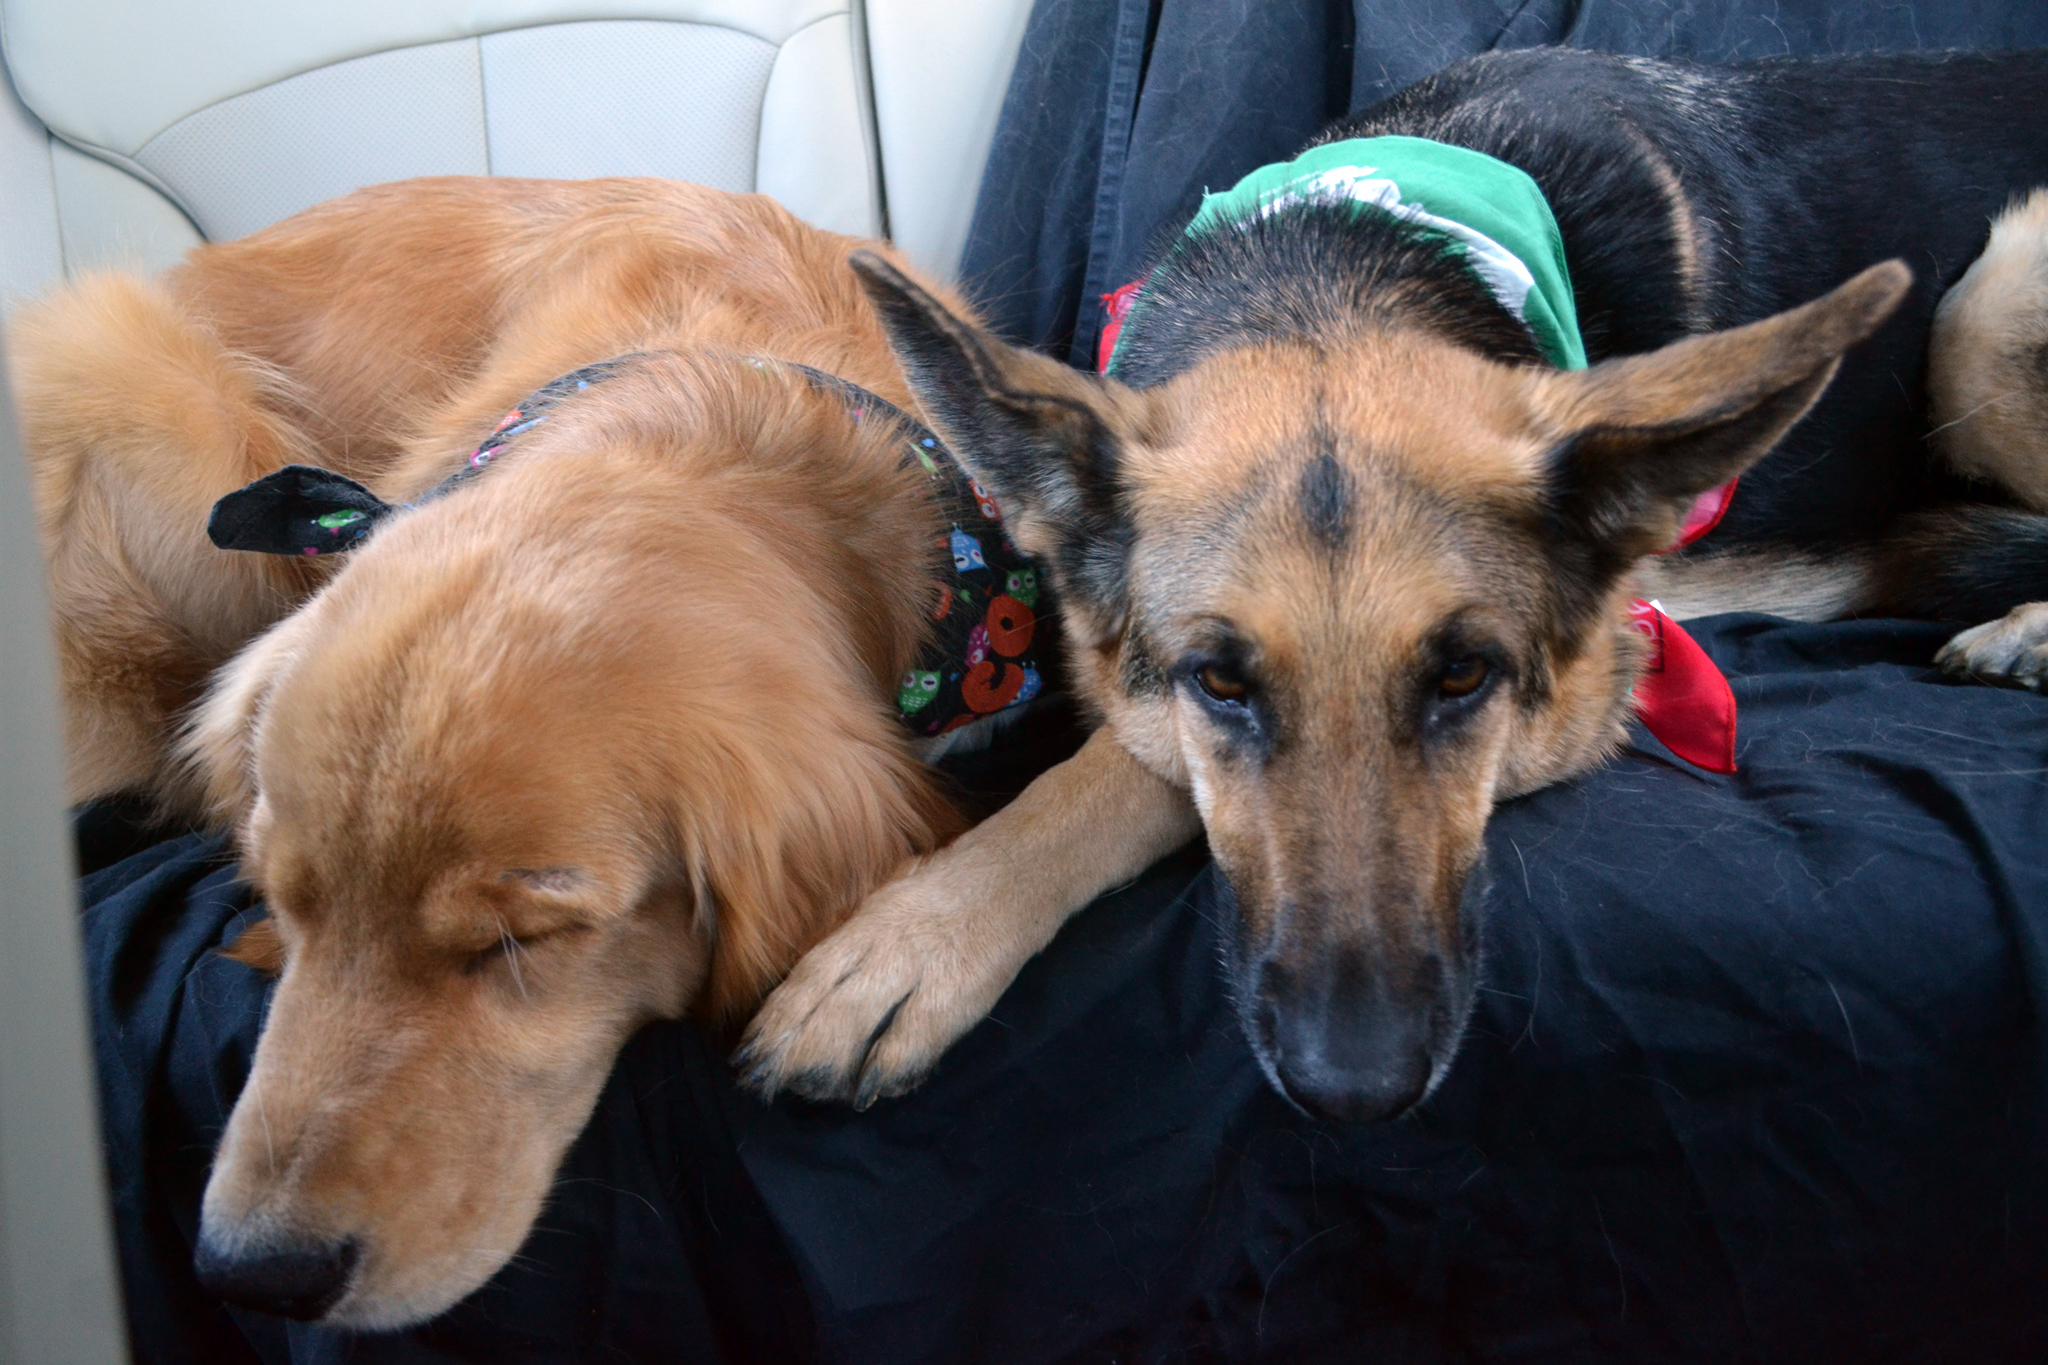 german shepherd Oprah and golden retriever Rocco after walking in a parade